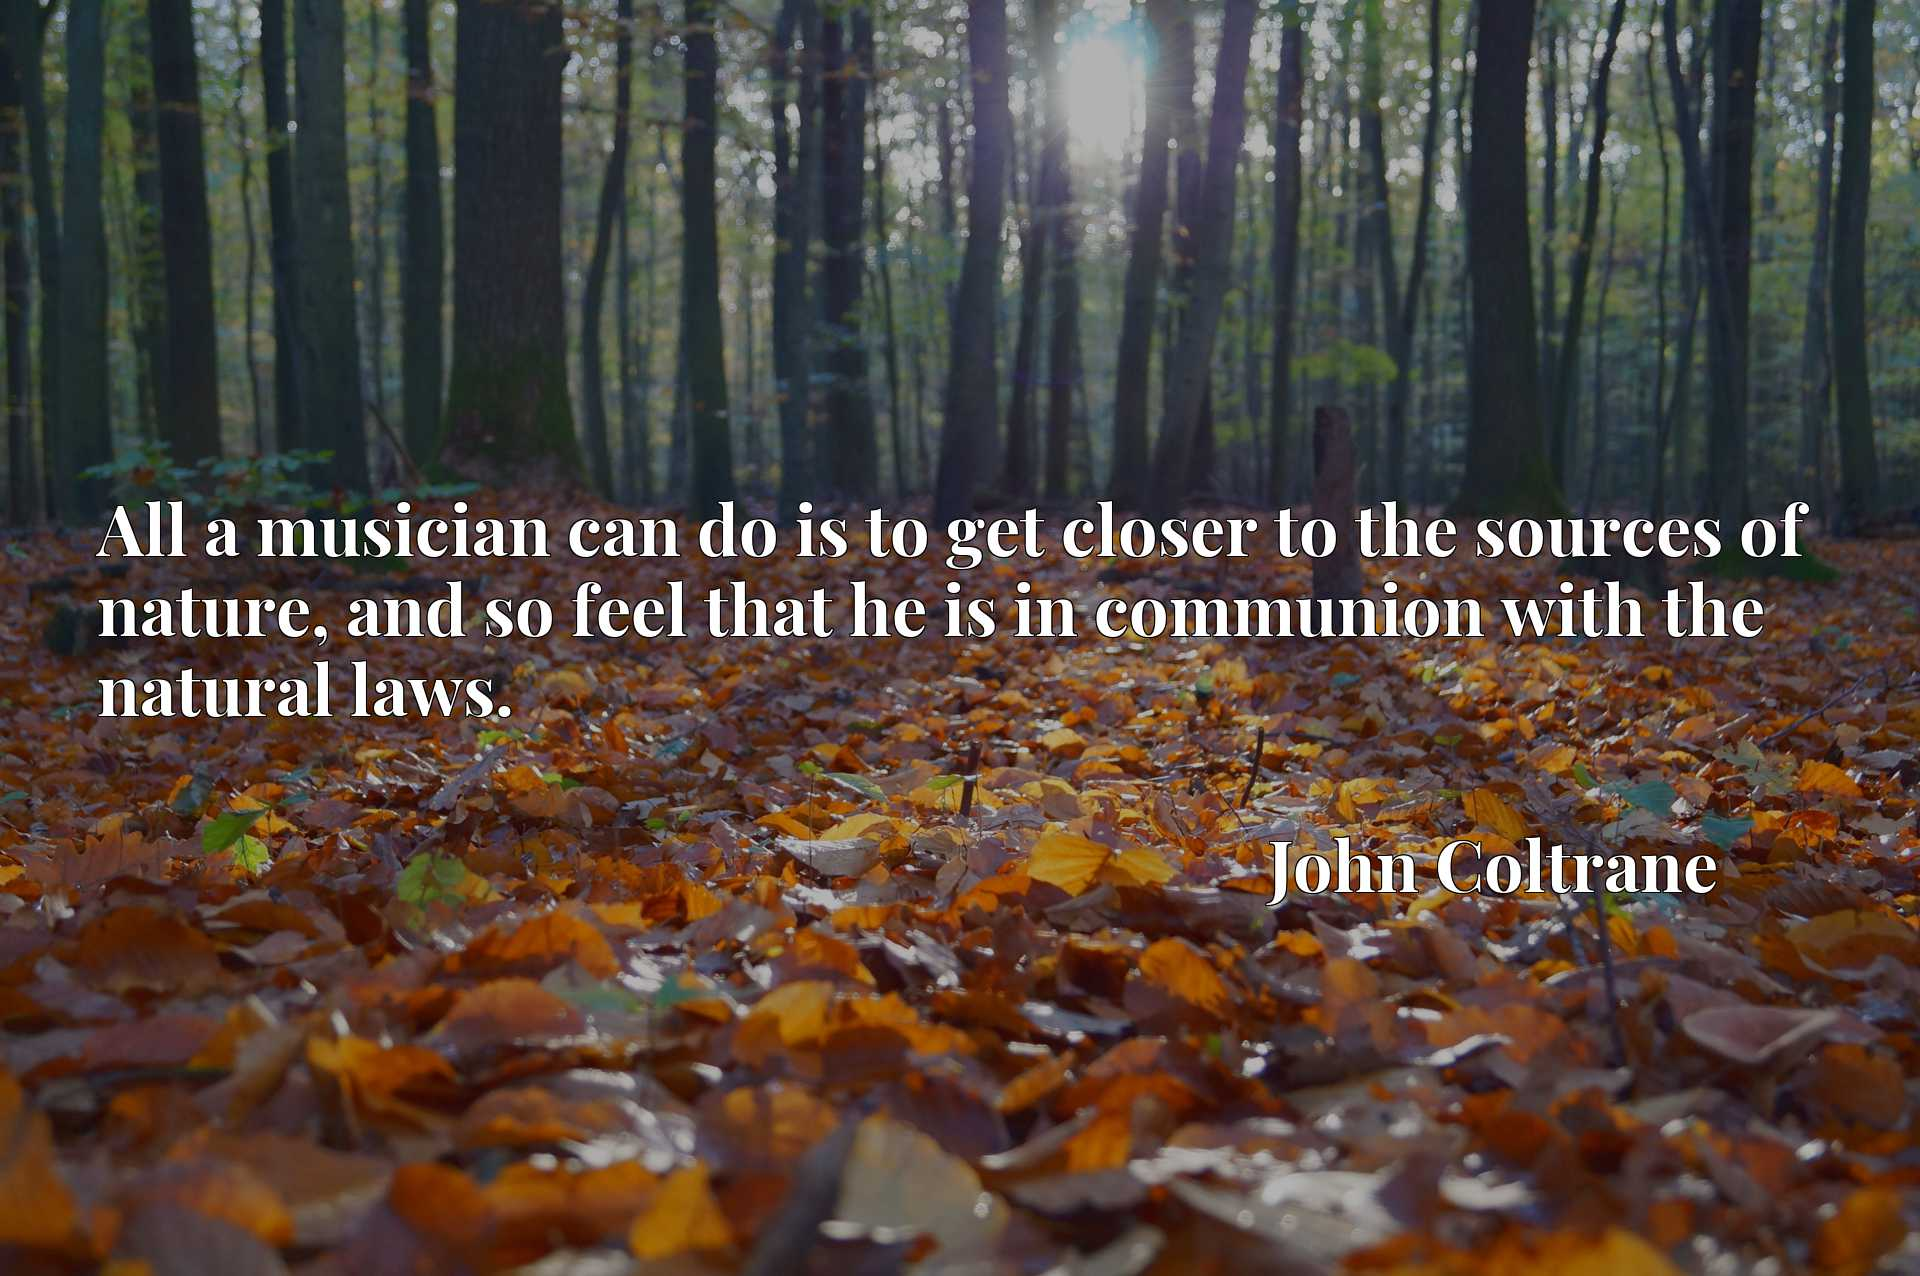 Quote Picture :All a musician can do is to get closer to the sources of nature, and so feel that he is in communion with the natural laws.